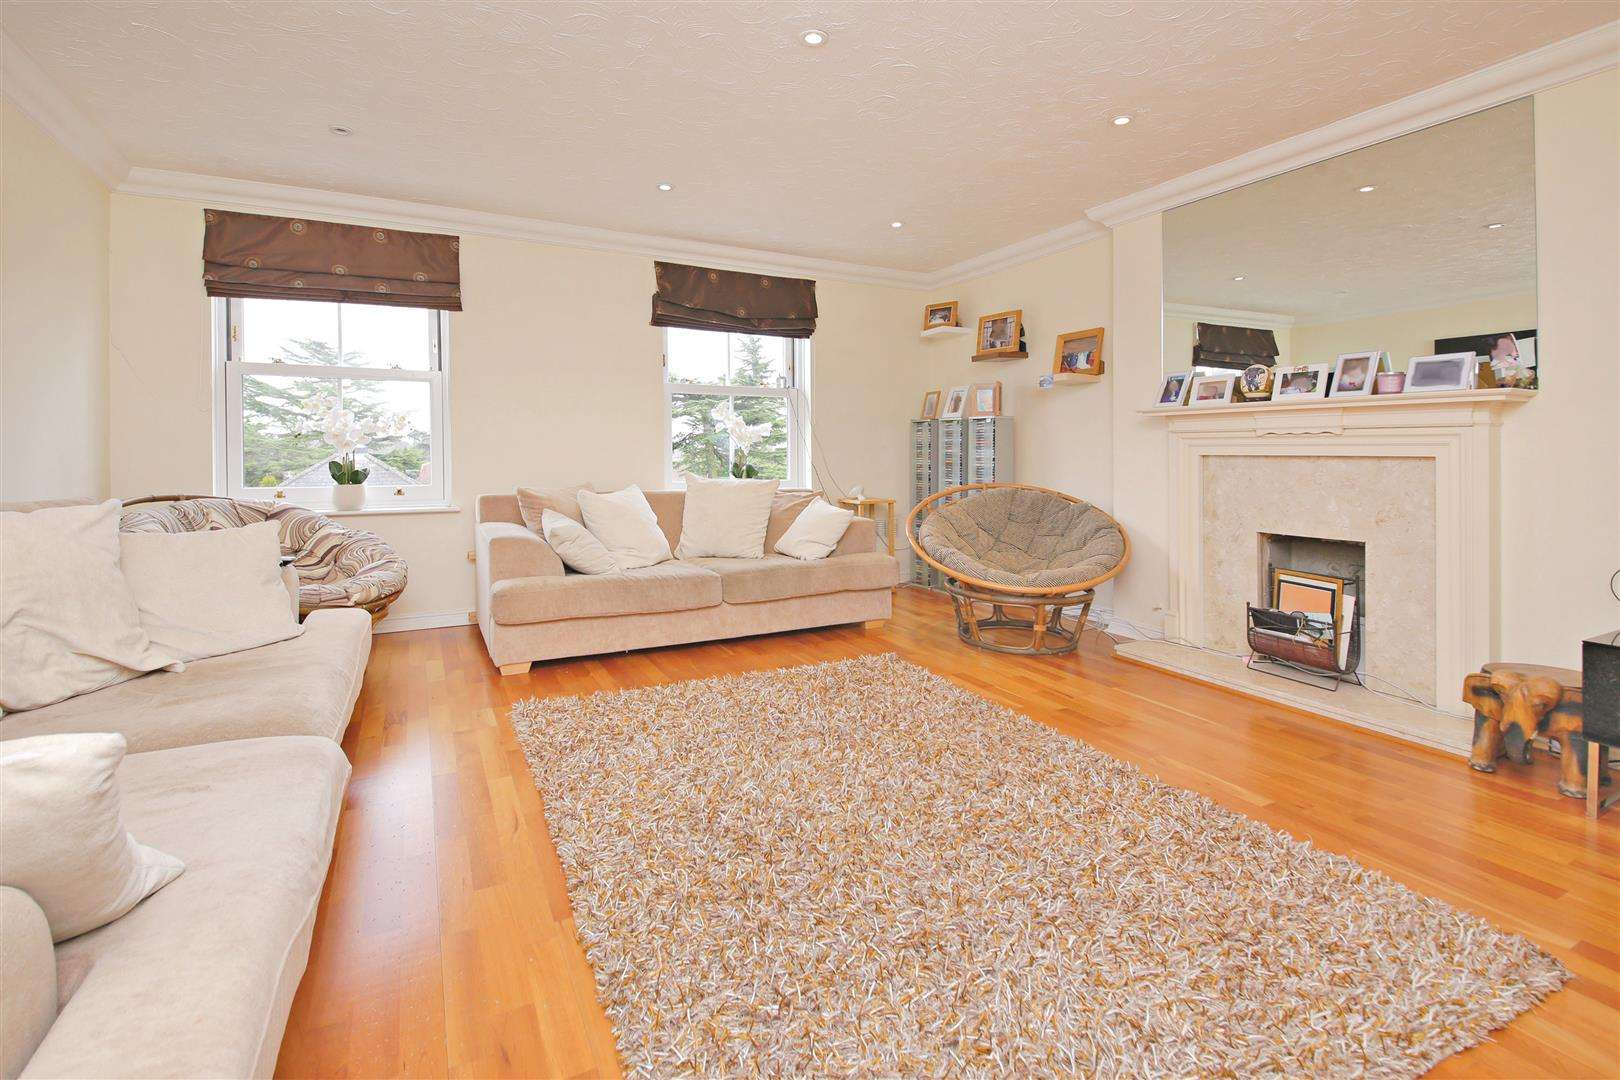 4 bed to rent in Shenley - (Property Image 4)